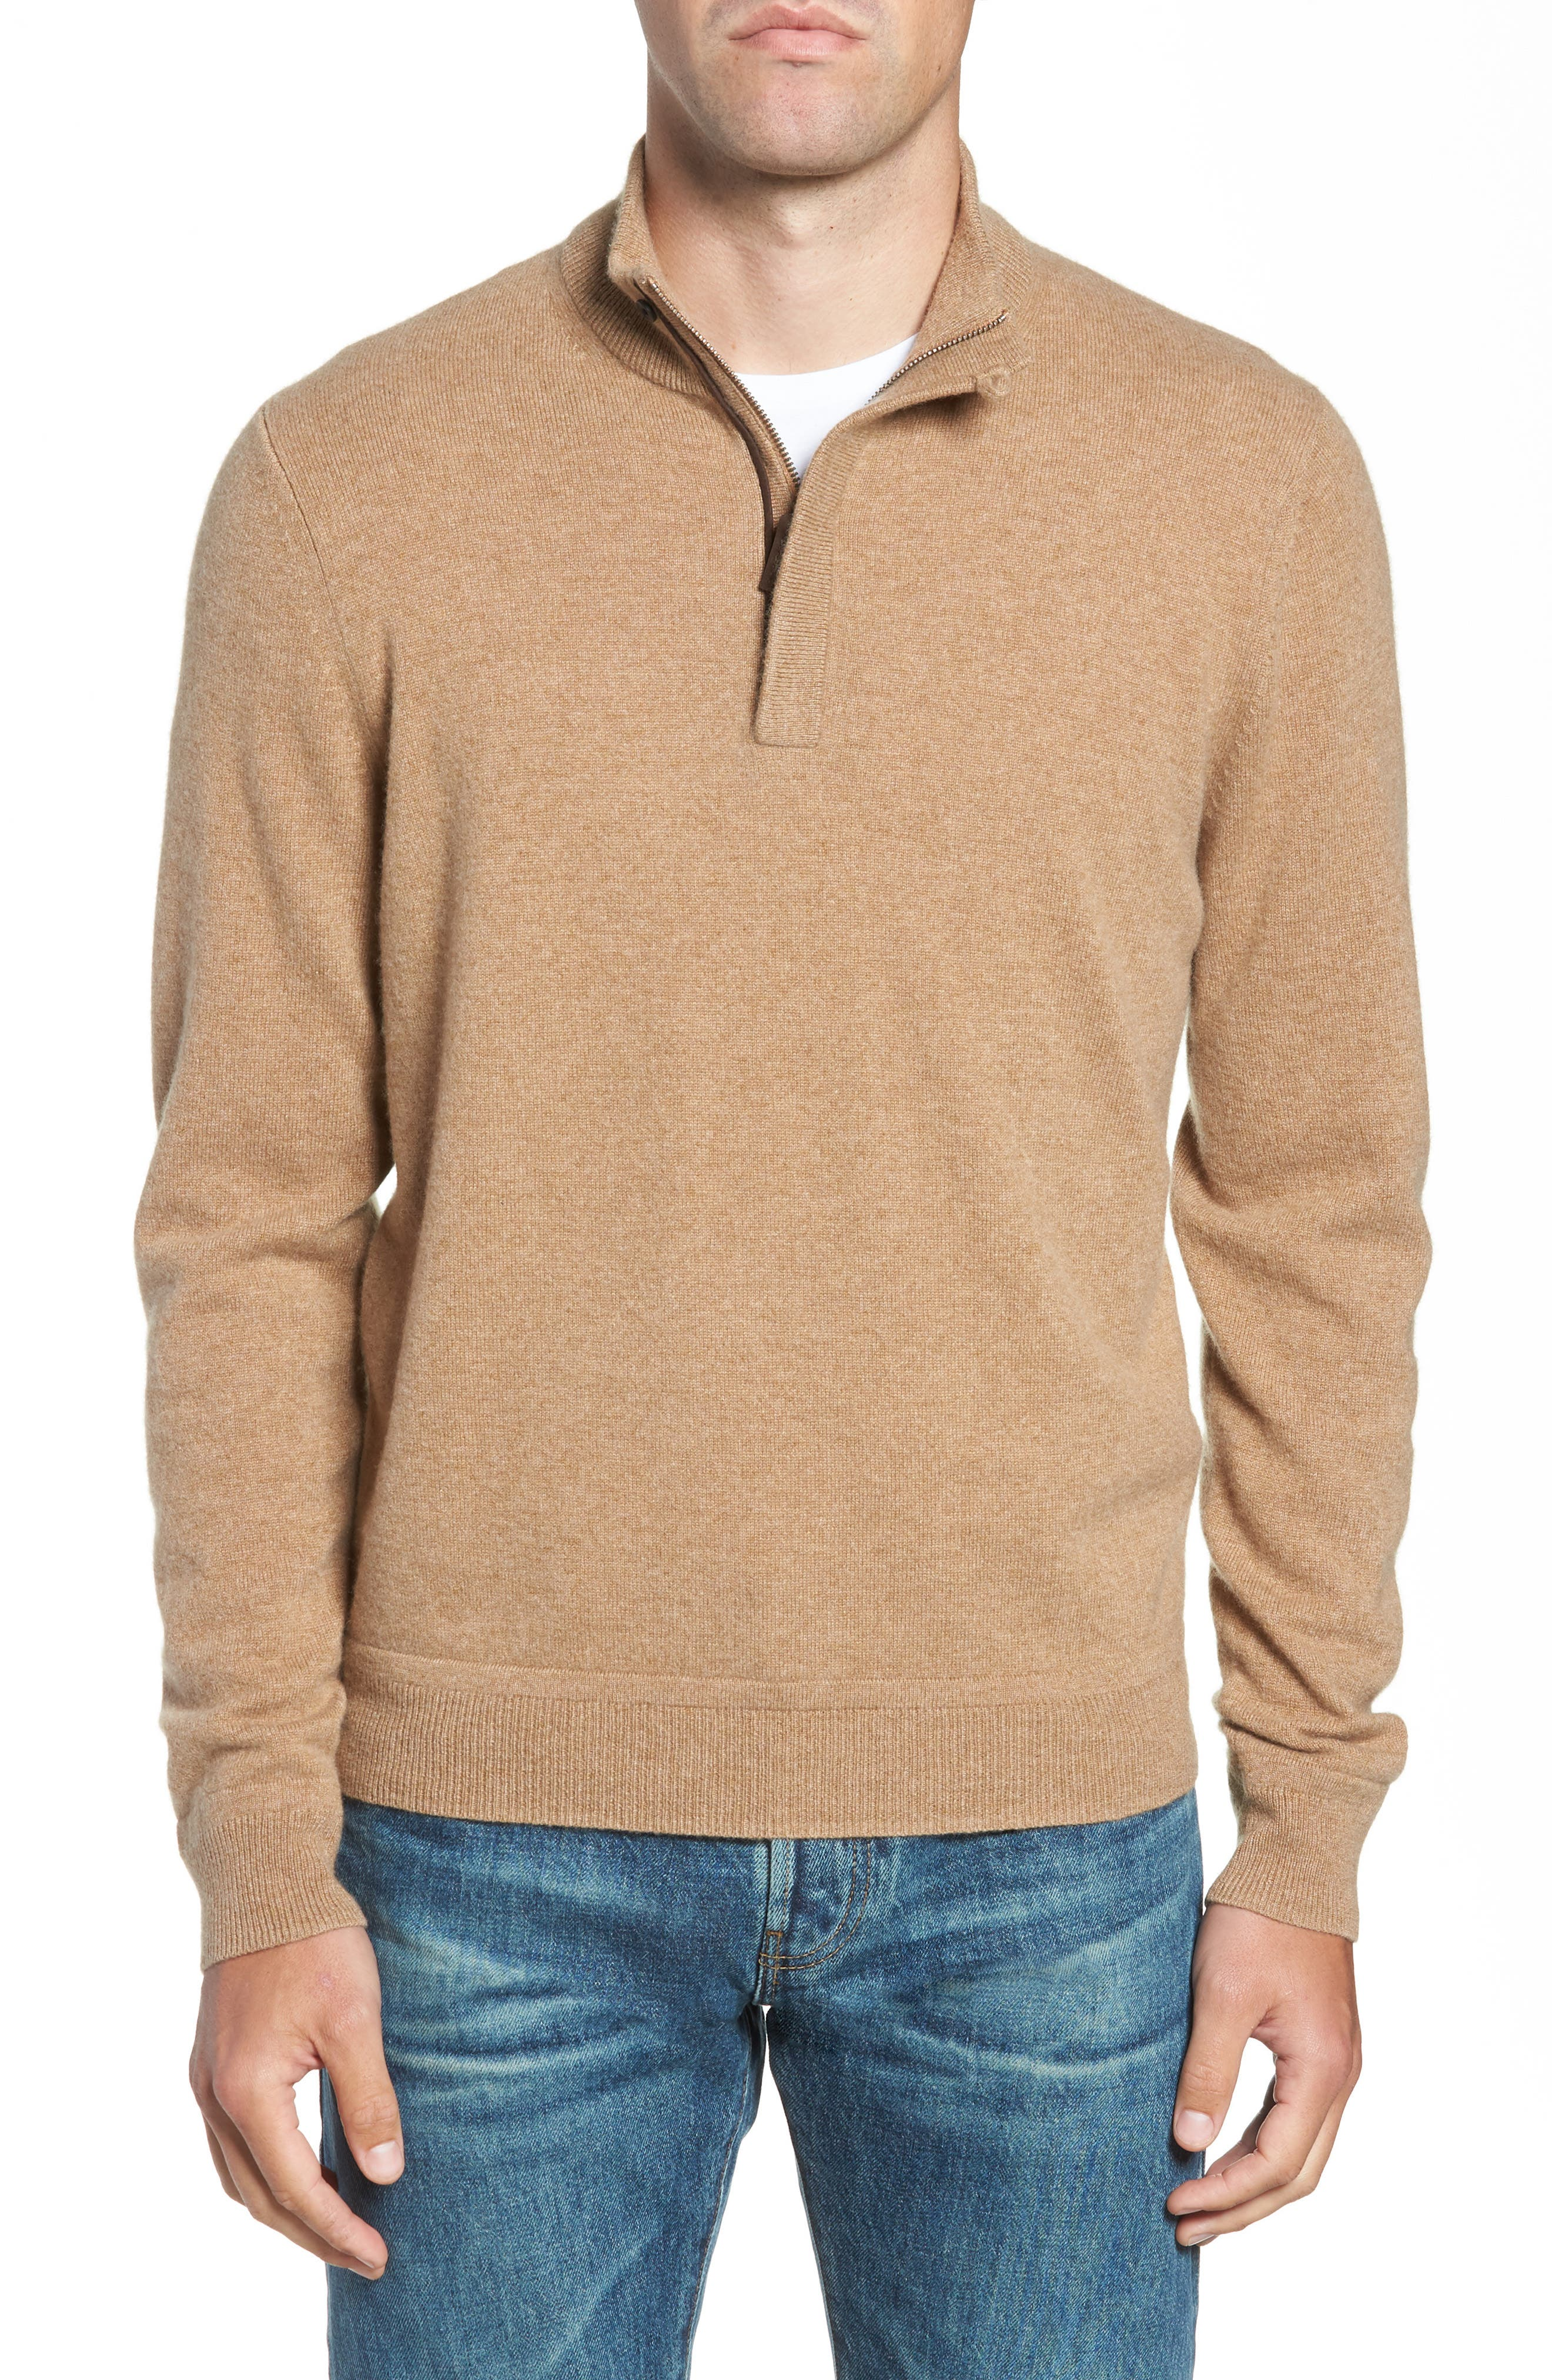 Regular Fit Quarter Zip Cashmere Sweater,                             Main thumbnail 1, color,                             BROWN BEAR